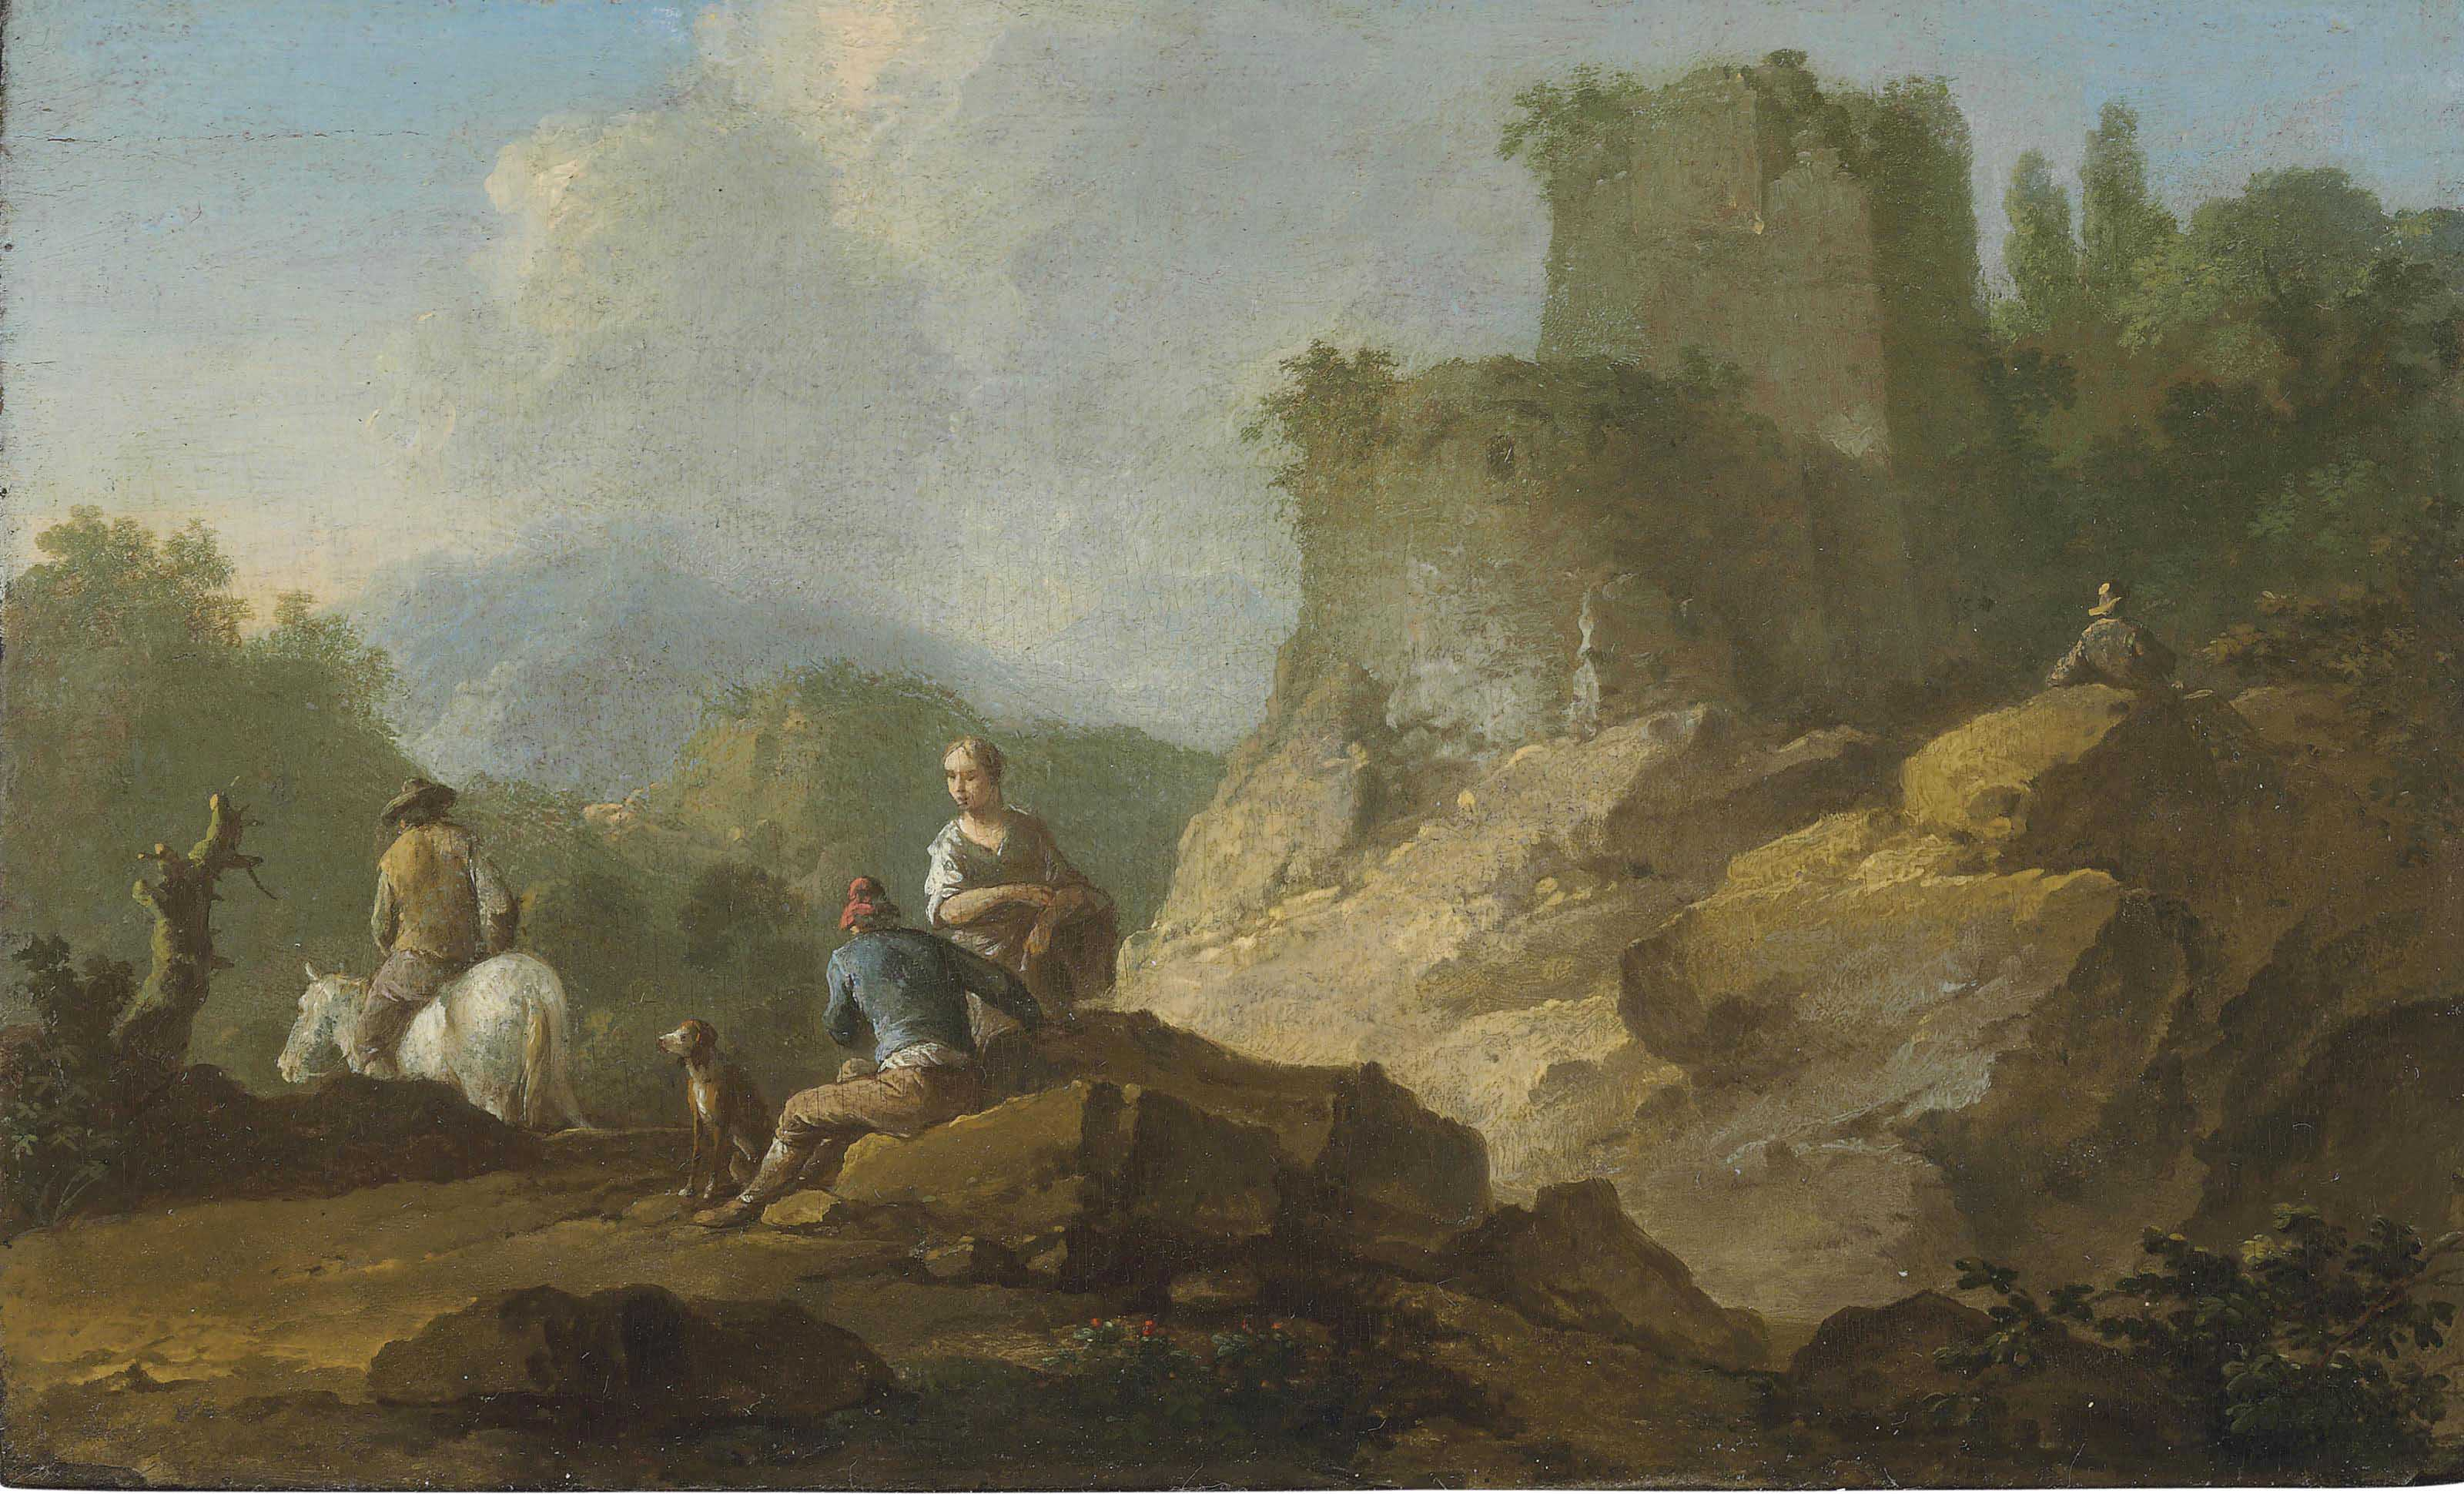 Landscape with travellers and ruins